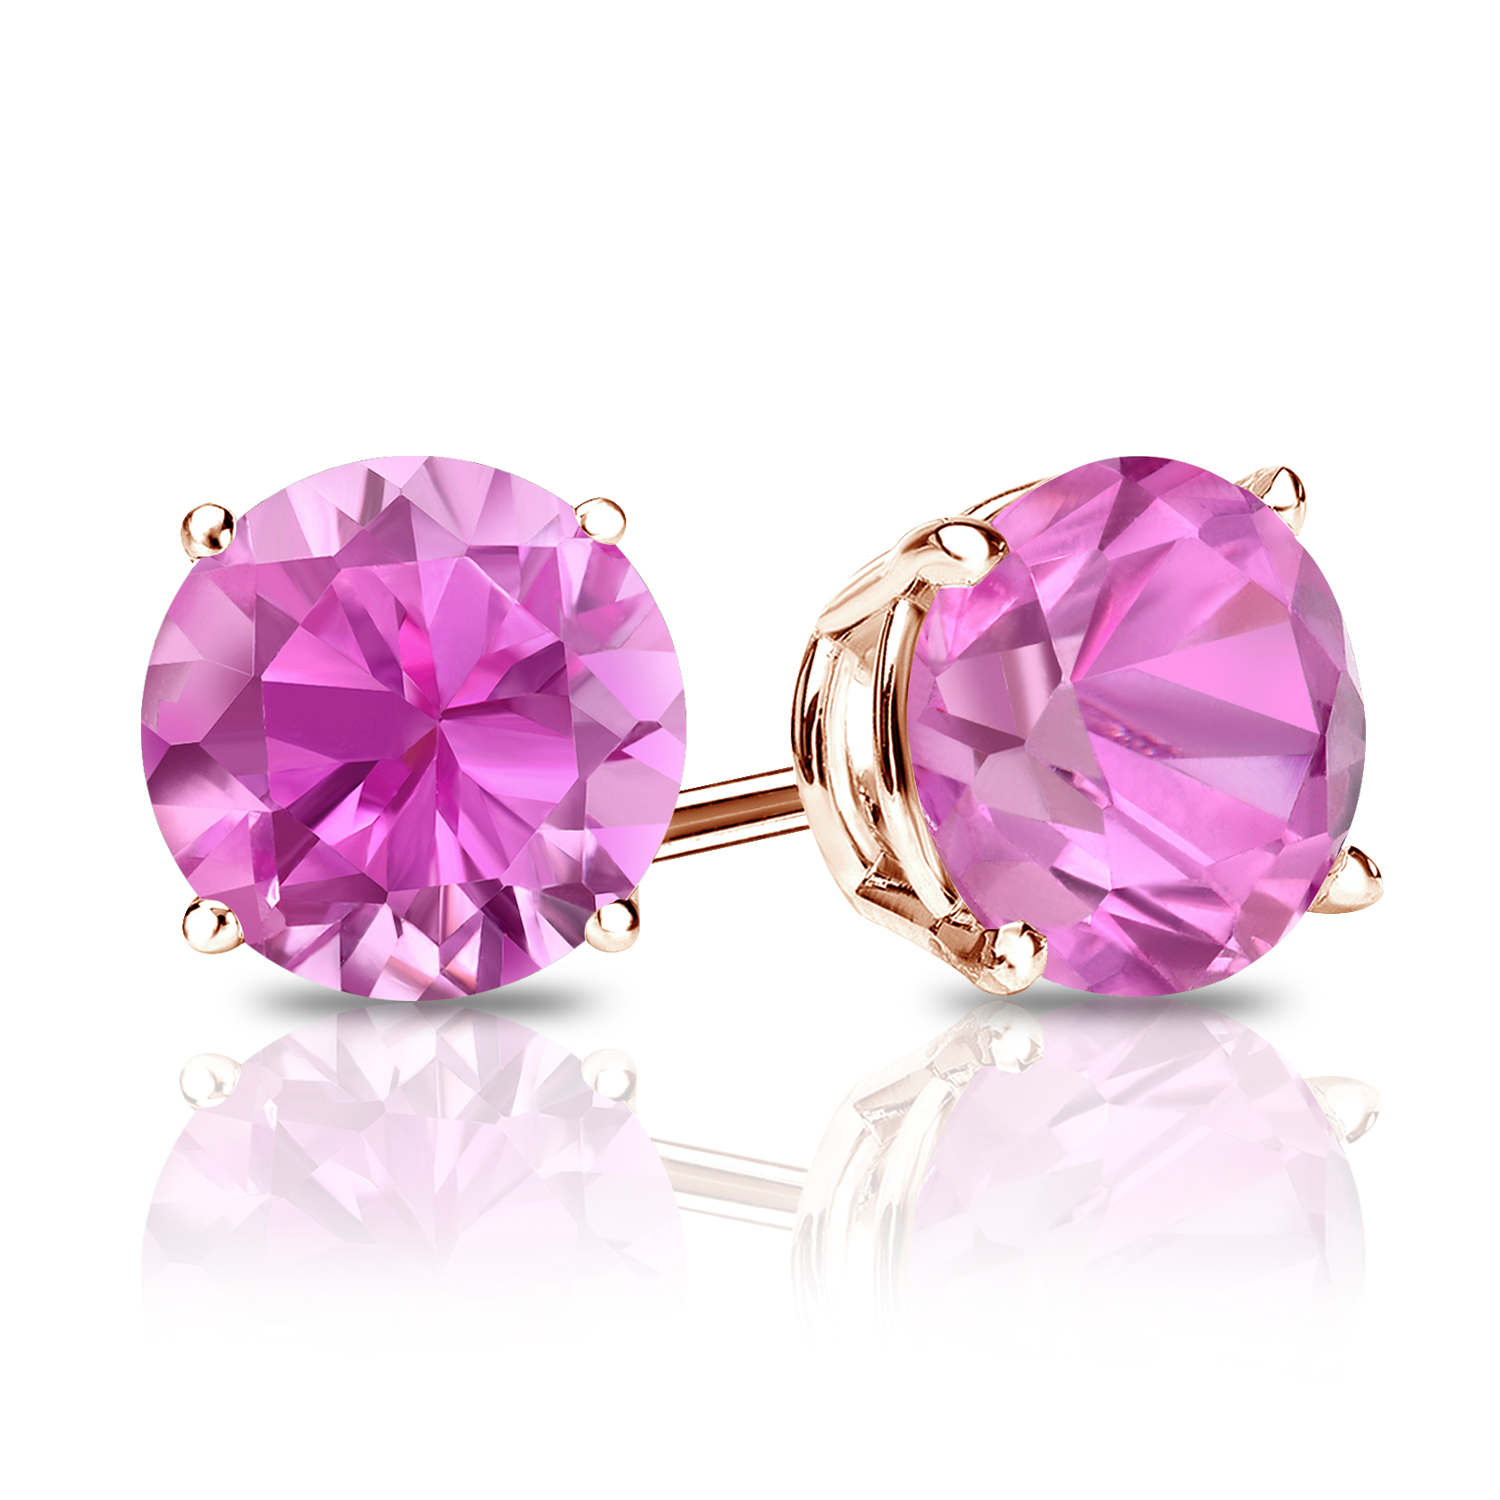 Certified 0.25 cttw Round Pink Sapphire Gemstone Stud Earrings in 14k Rose Gold 4-Prong Basket (Pink, AAA)